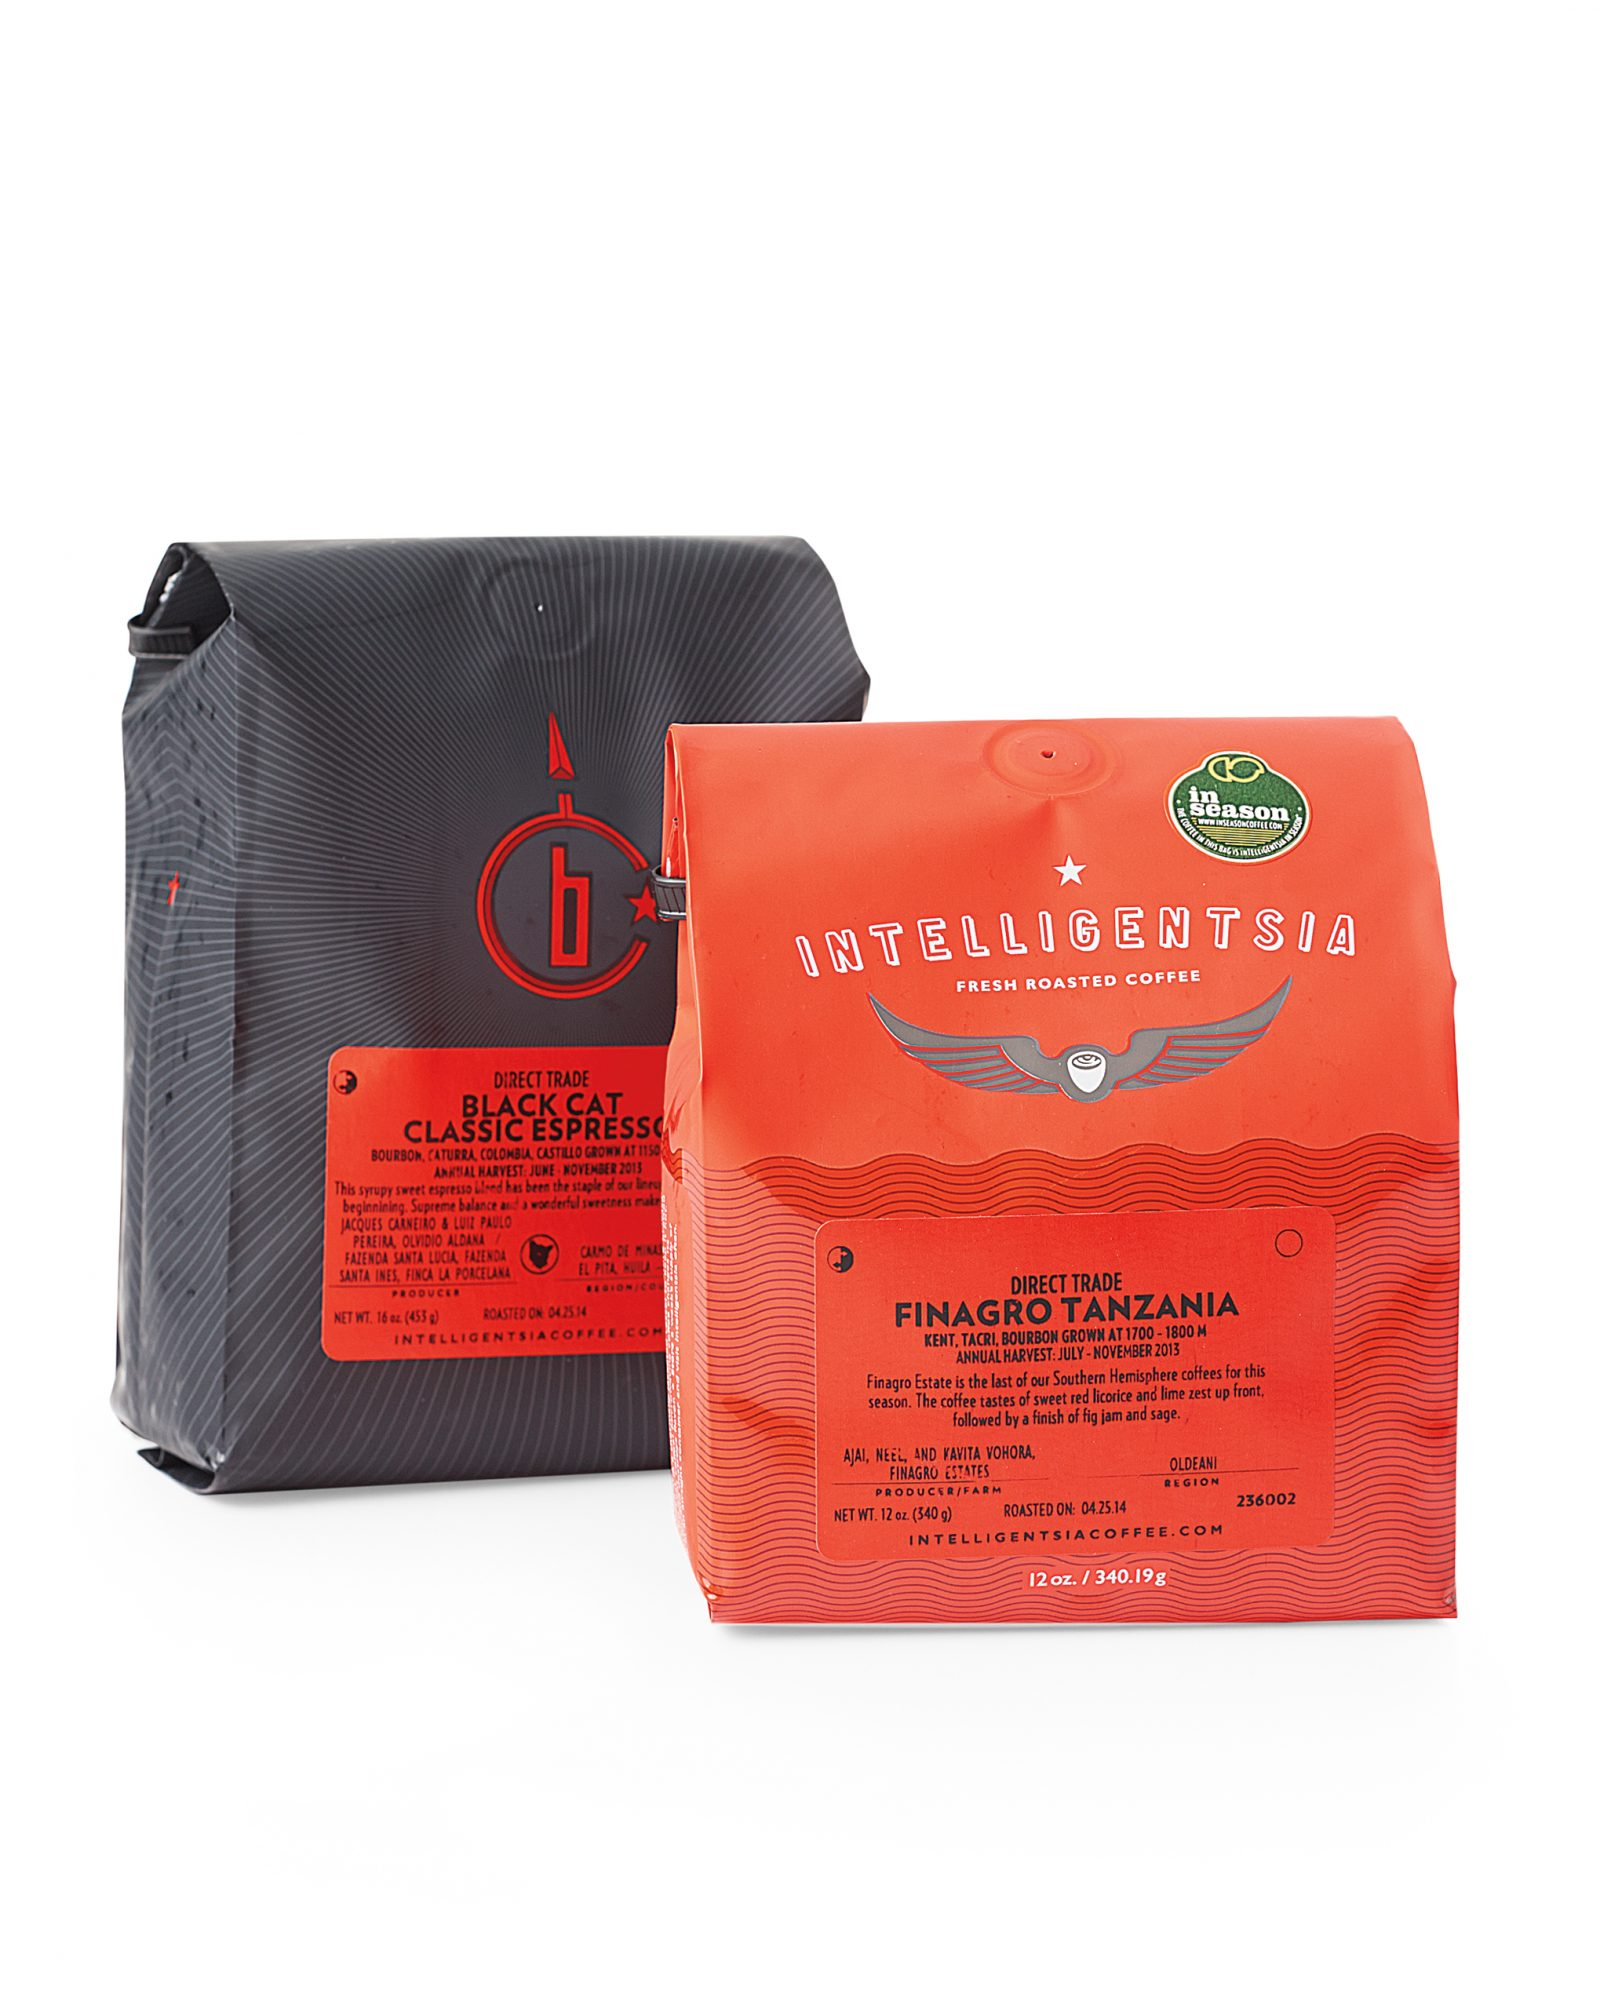 intelligentsia-coffee-015-d111253.jpg